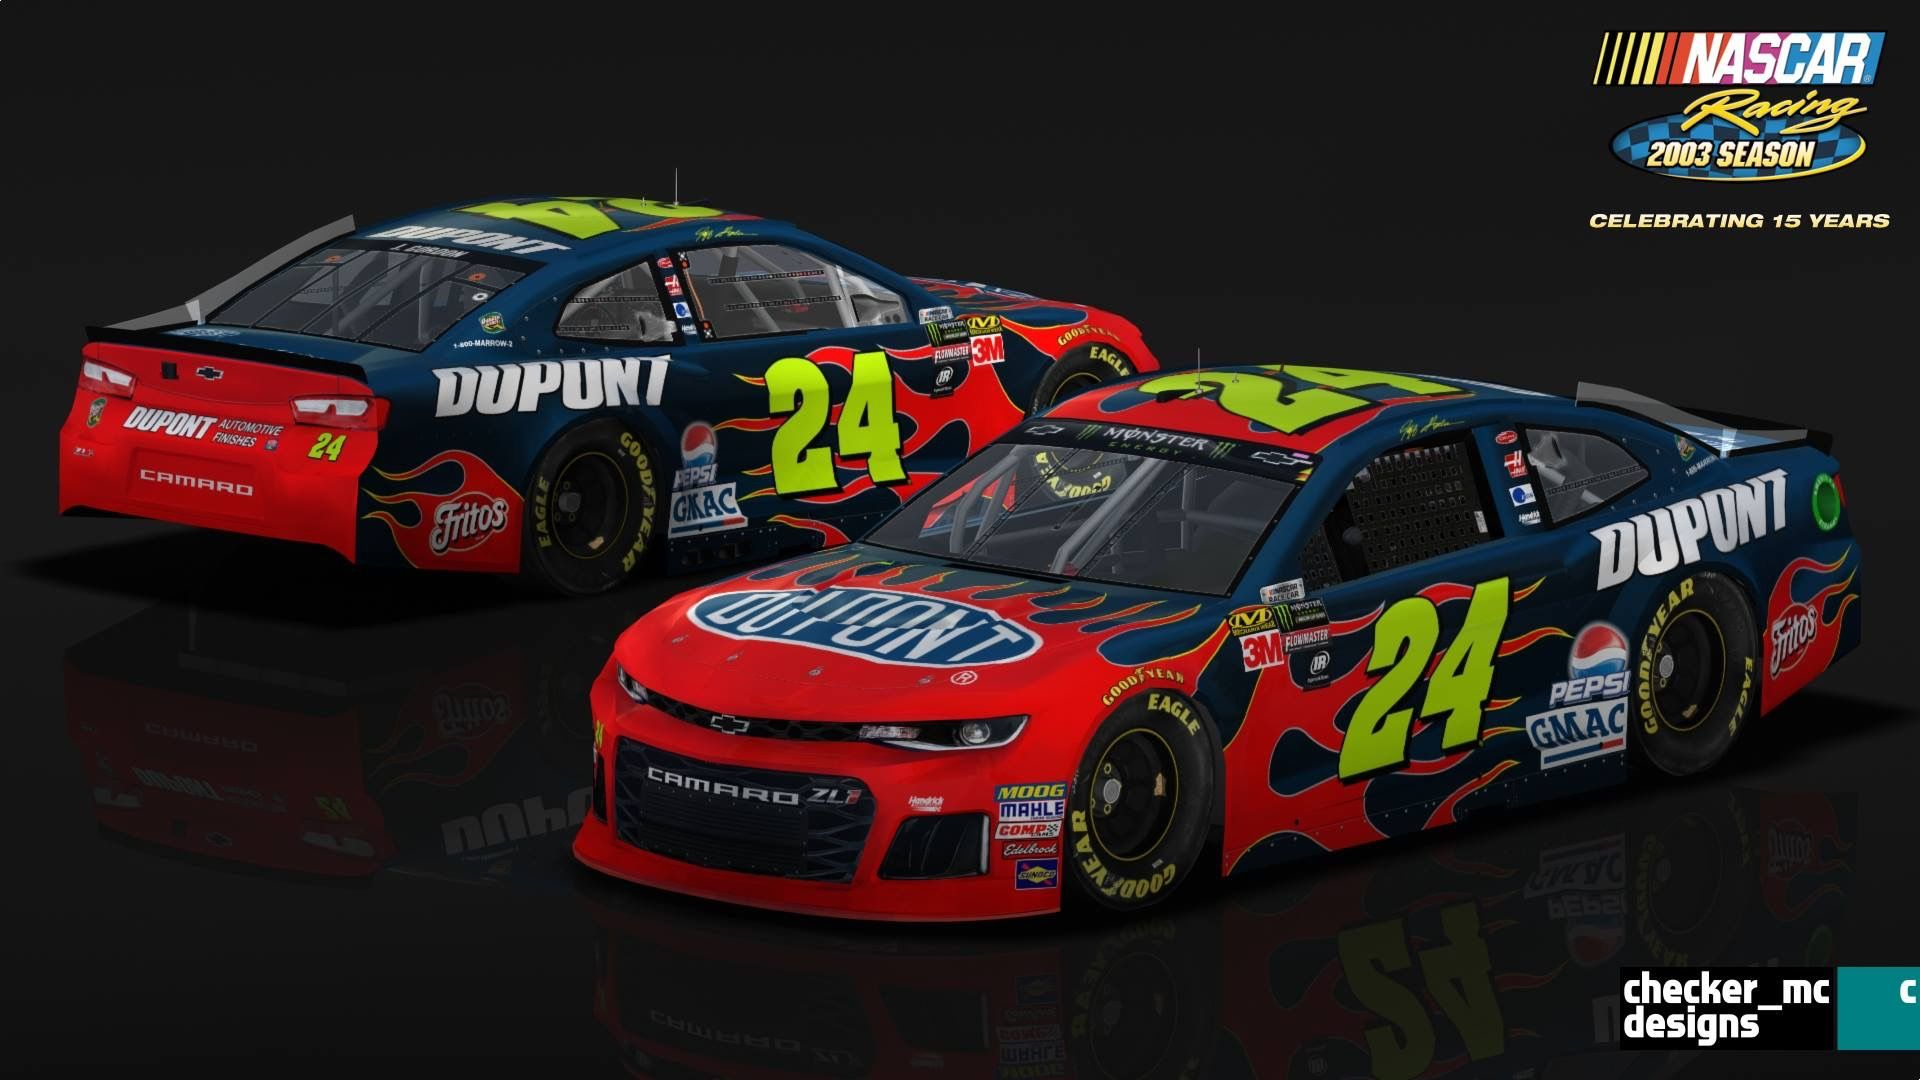 Jeff Gordon Nascar Race Cars Nascar Cars Nascar